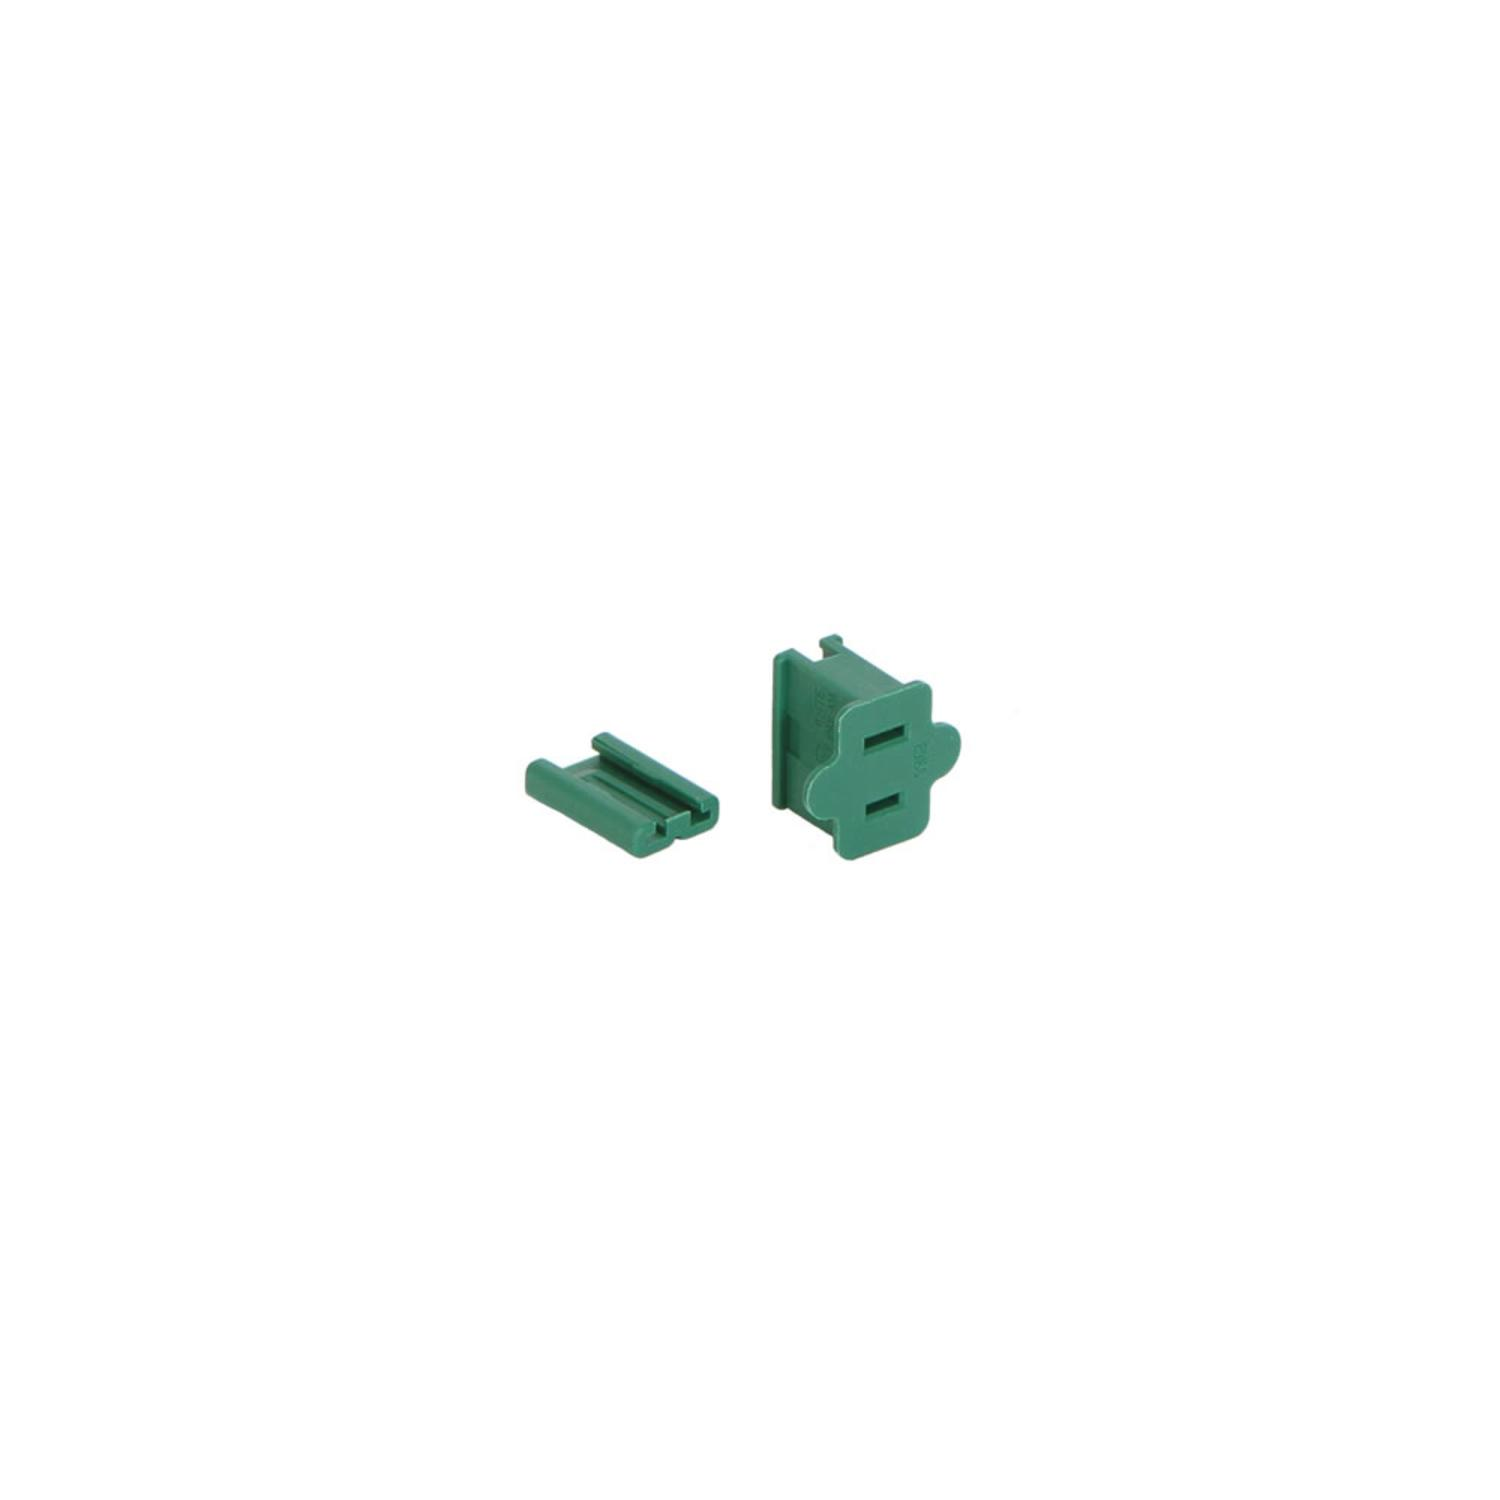 Green Female Quick Zip Plug For Spt1 18 Gauge Wire 8 Amps Wiring